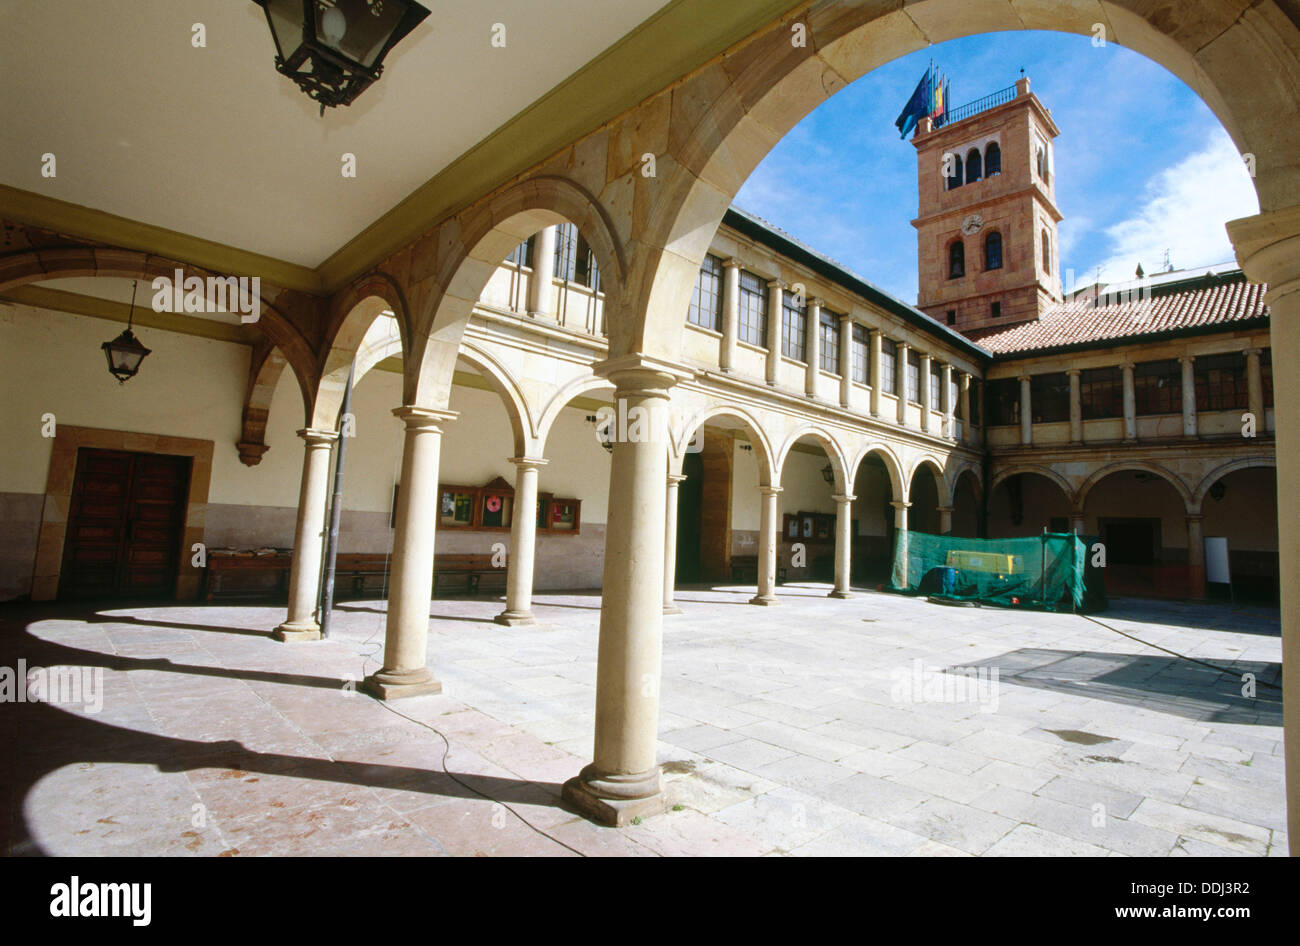 Courtyard of the Faculty of Law. University of Oviedo. Oviedo. Spain - Stock Image